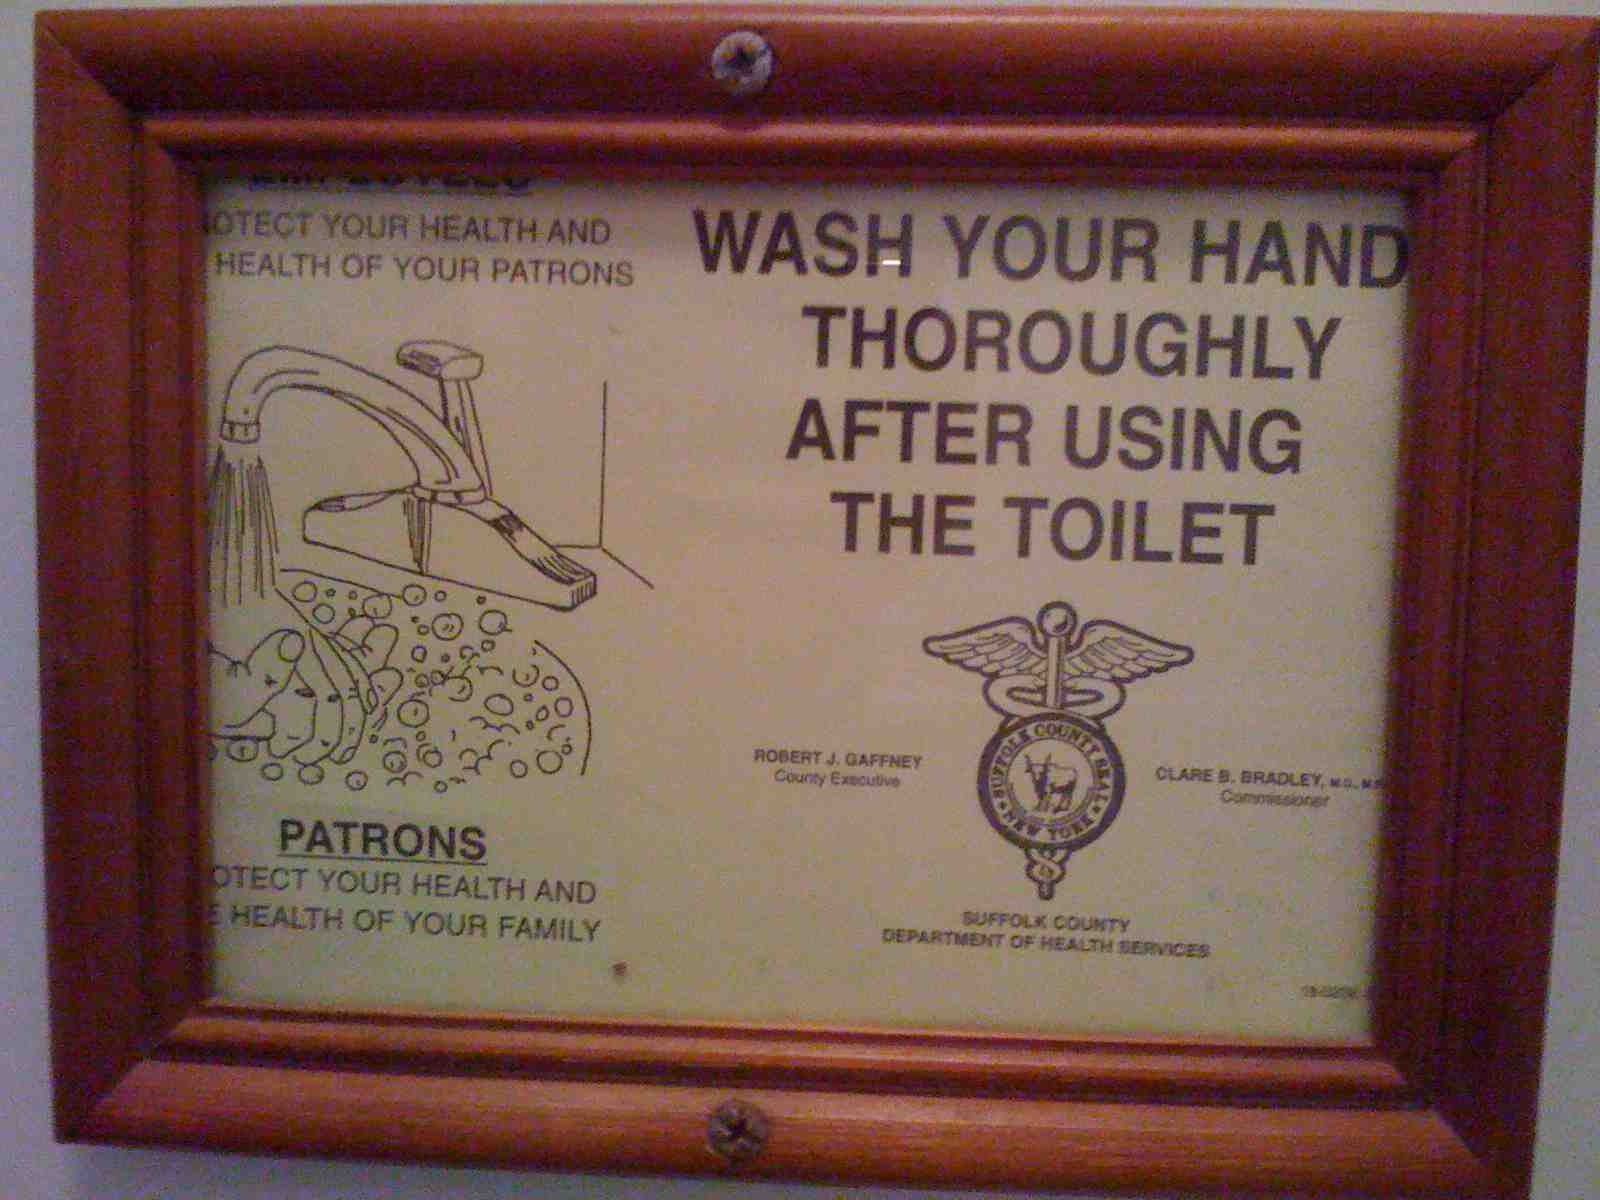 Amagansett, NY - Clam Bar - WASH YOUR HAND THOROUGHLY AFTER USING THE TOILET